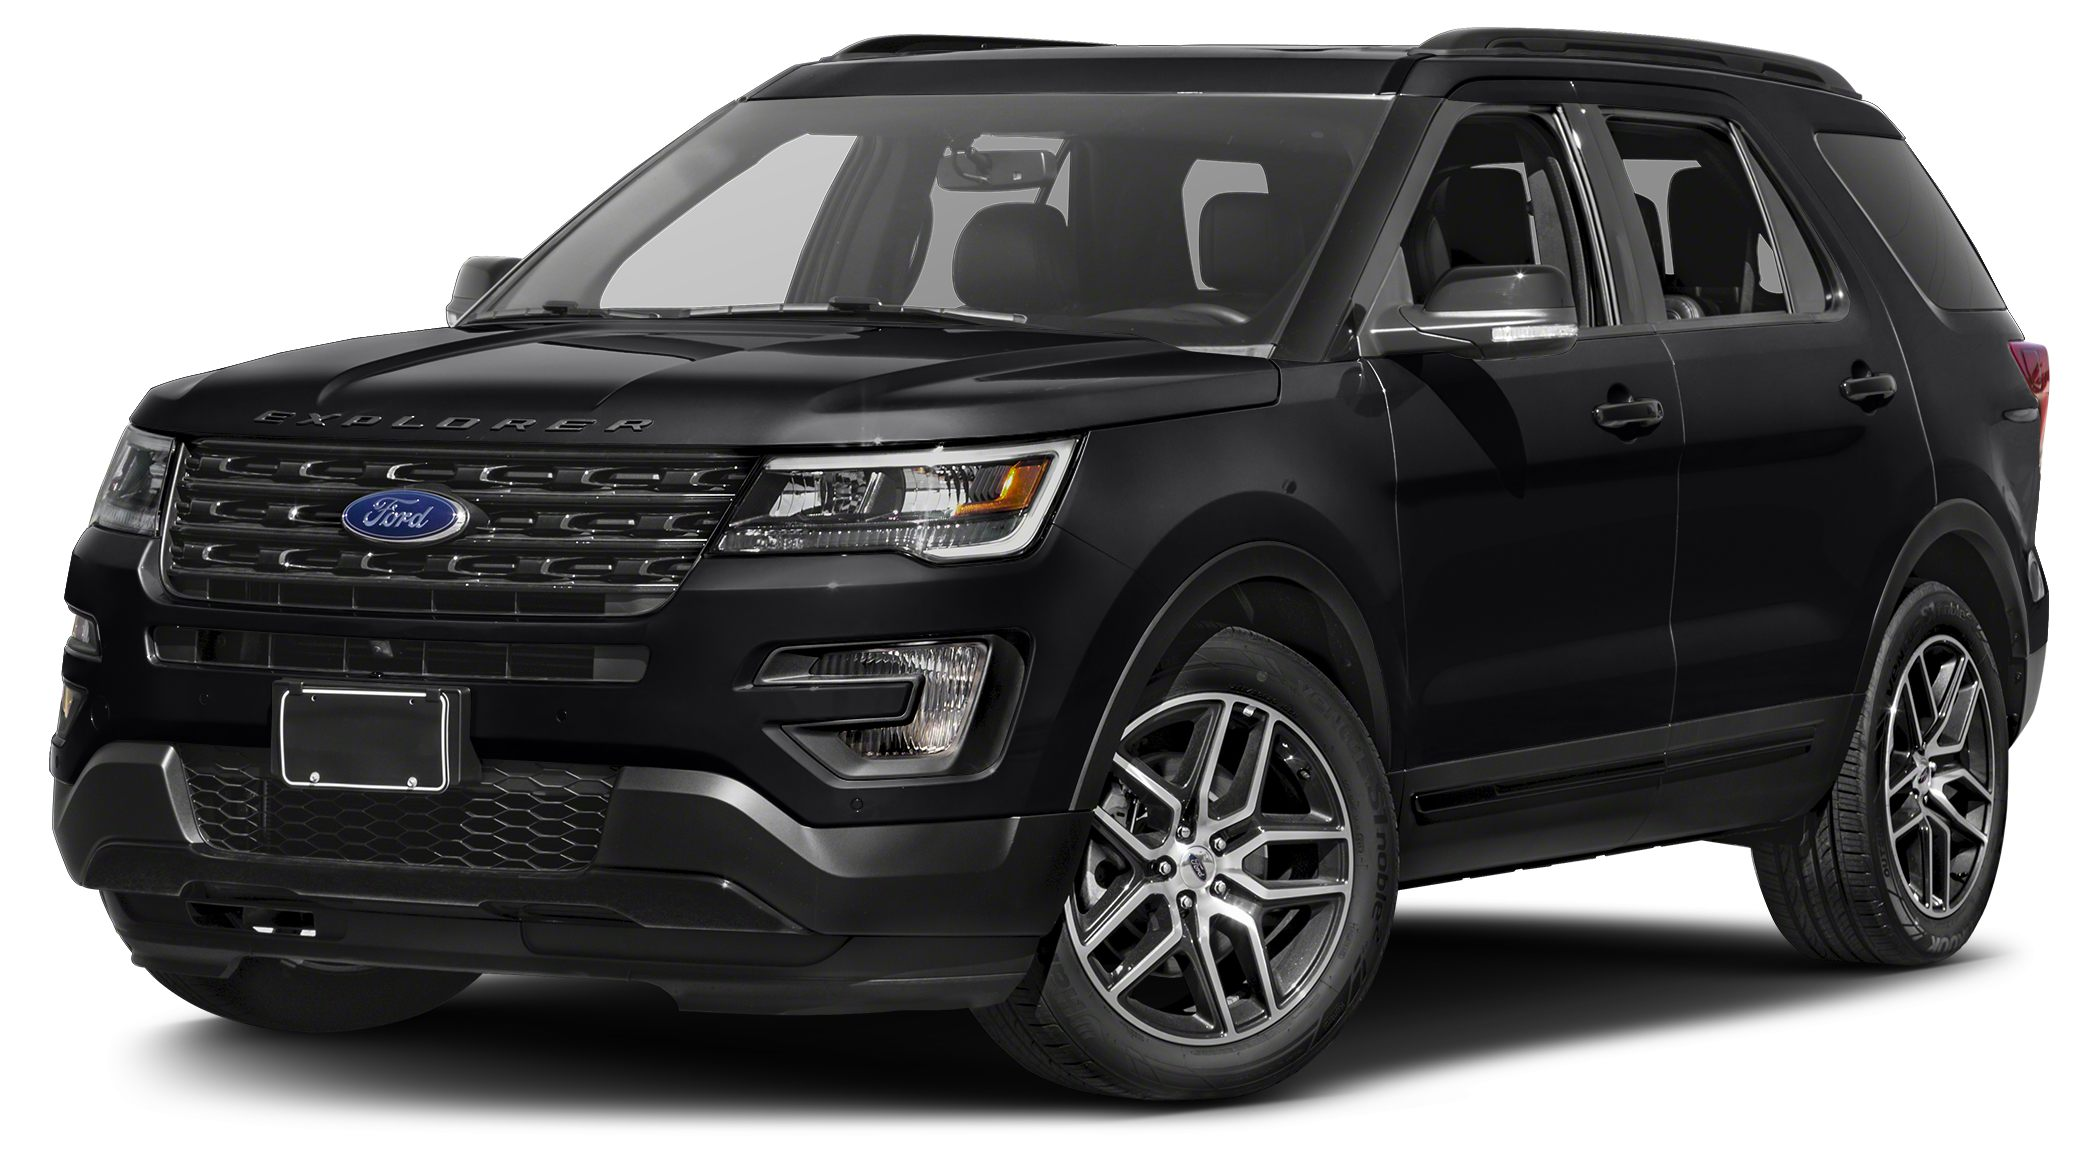 2017 Ford Explorer Sport 2017 Ford Explorer Sport Price includes 500 - Ford Credit Retail Bonus